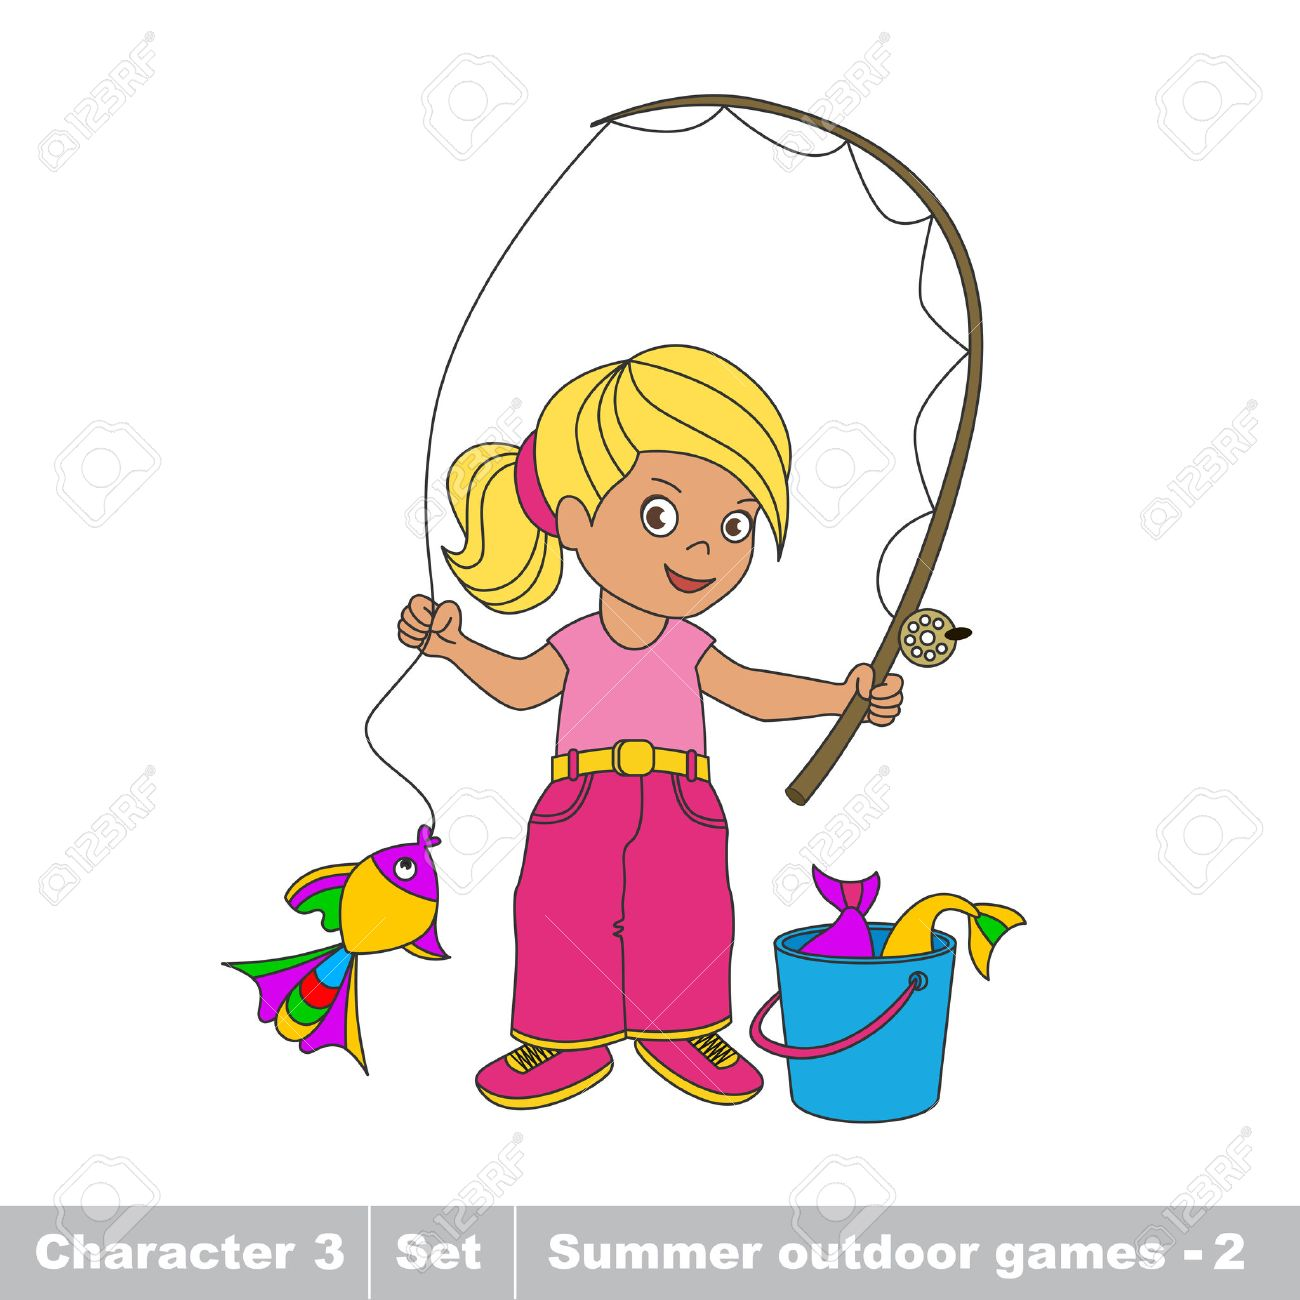 Catching a Fish Clip Art , Images & Illustrations   Whimsy Clips ®